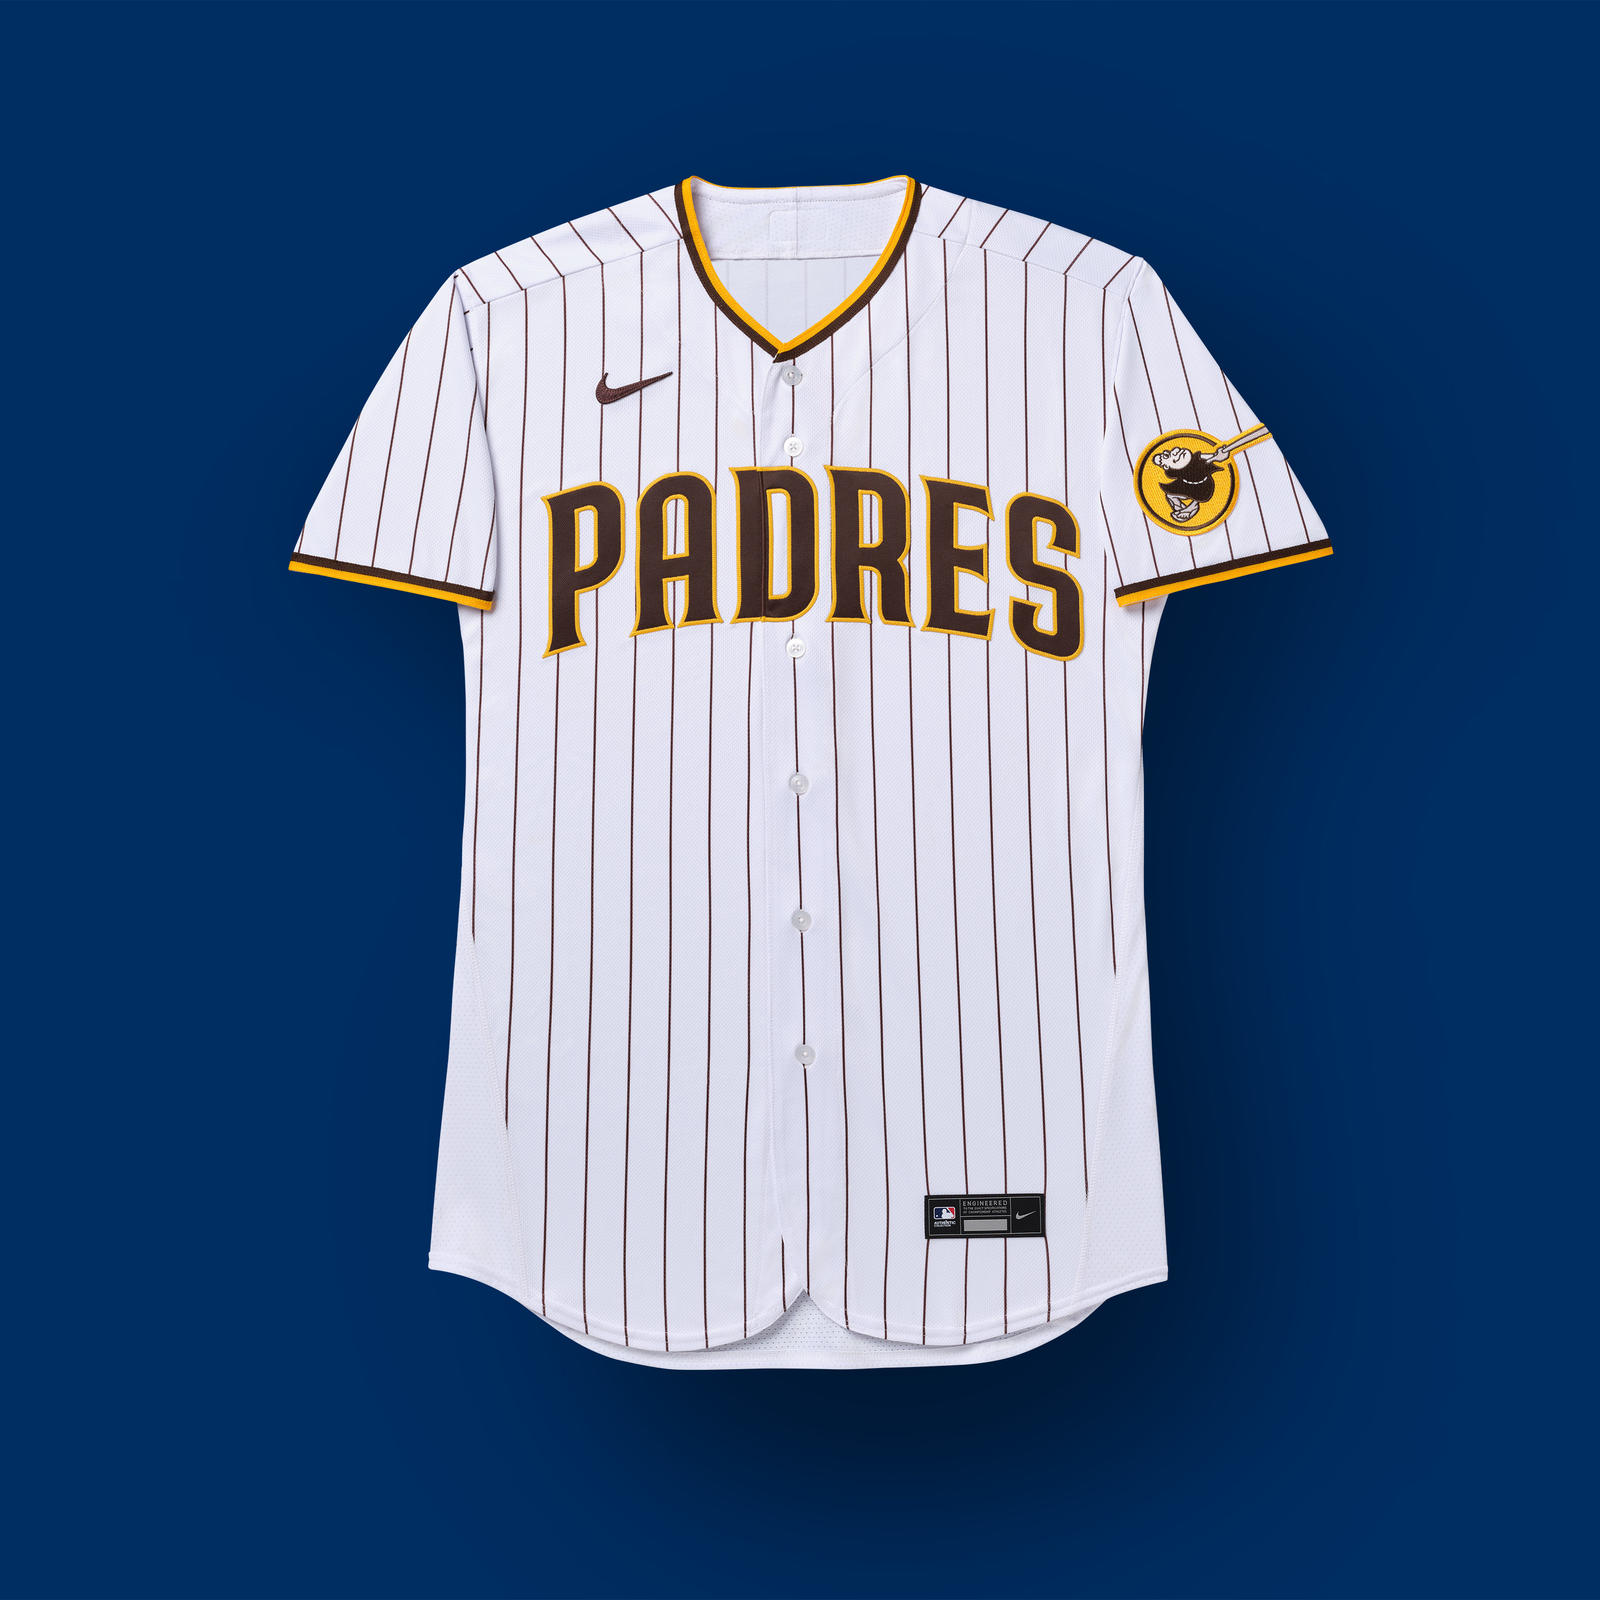 Nike x Major League Baseball Uniforms 2020 Official Images 18